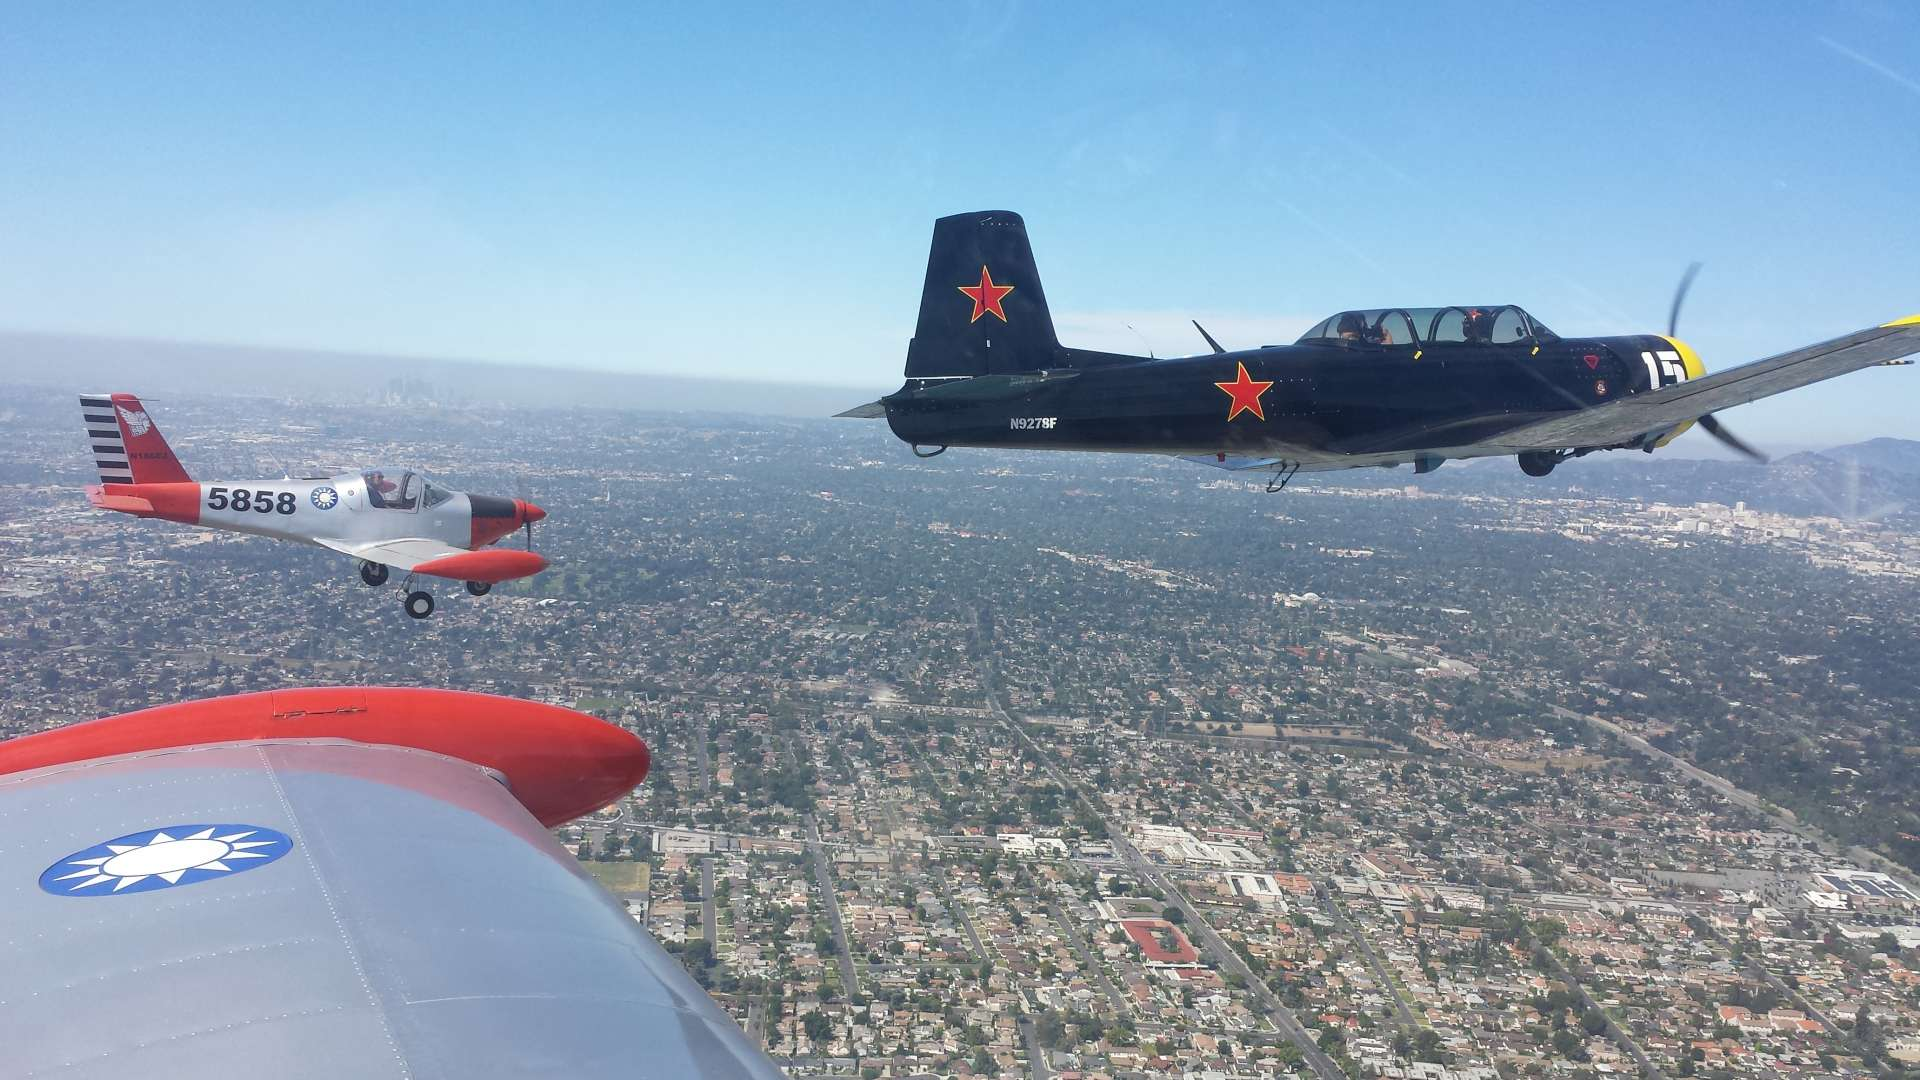 Formation over Pasadena